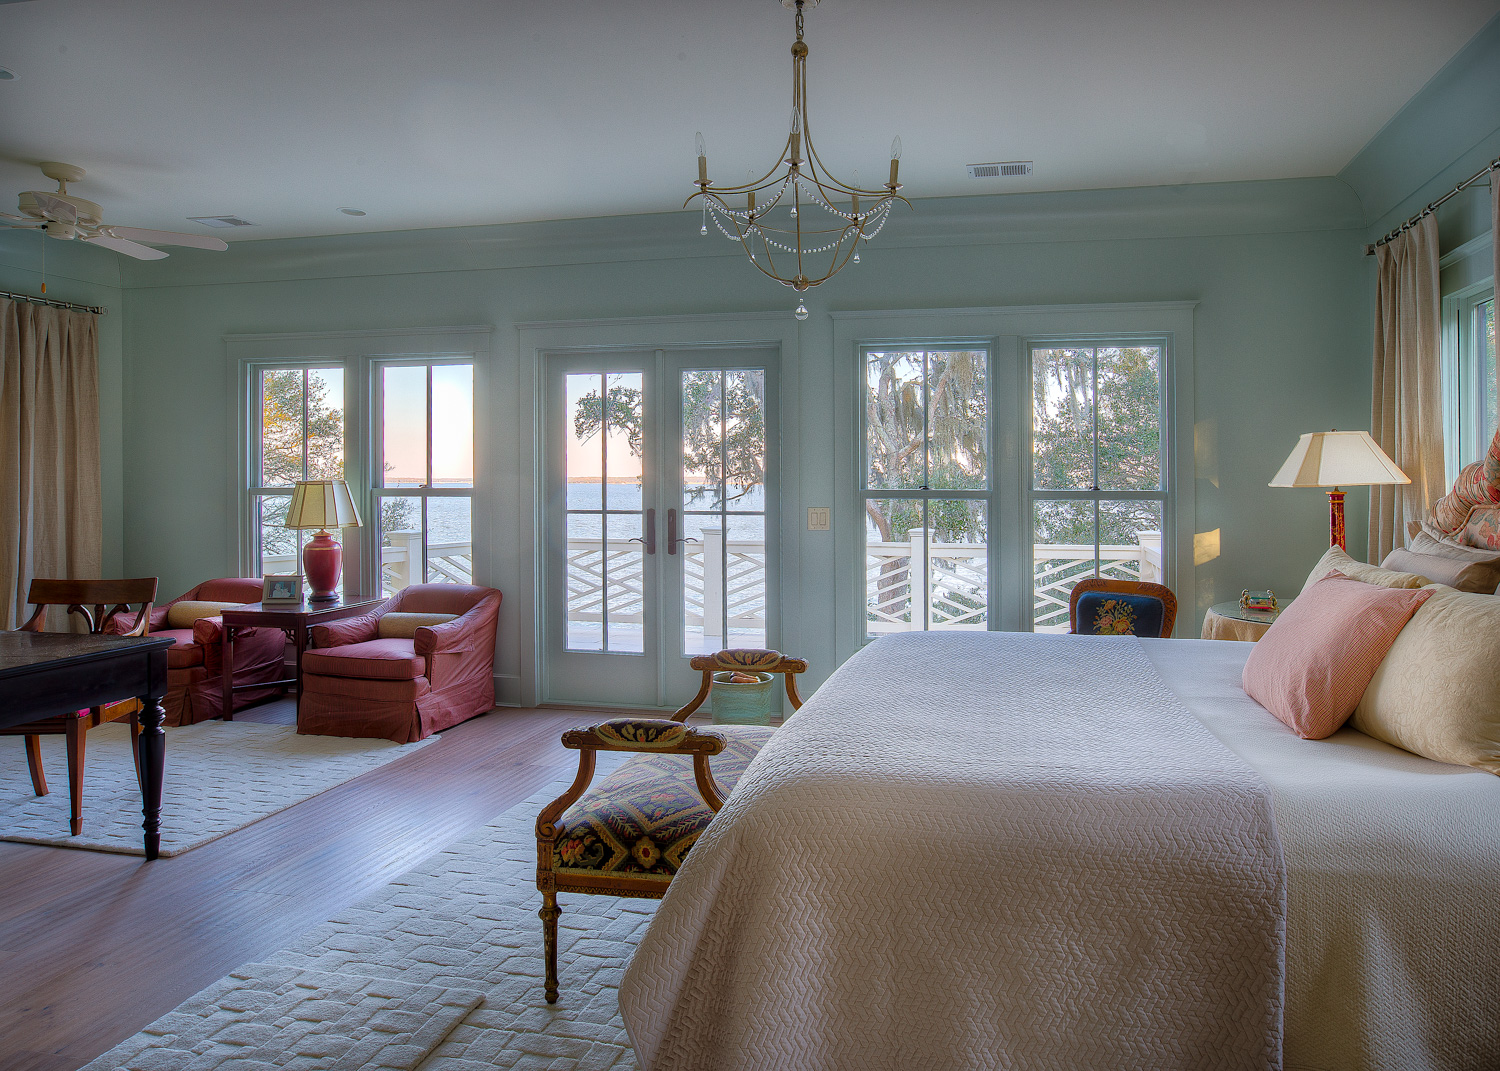 210 master-bedroom-window-PS2.jpg